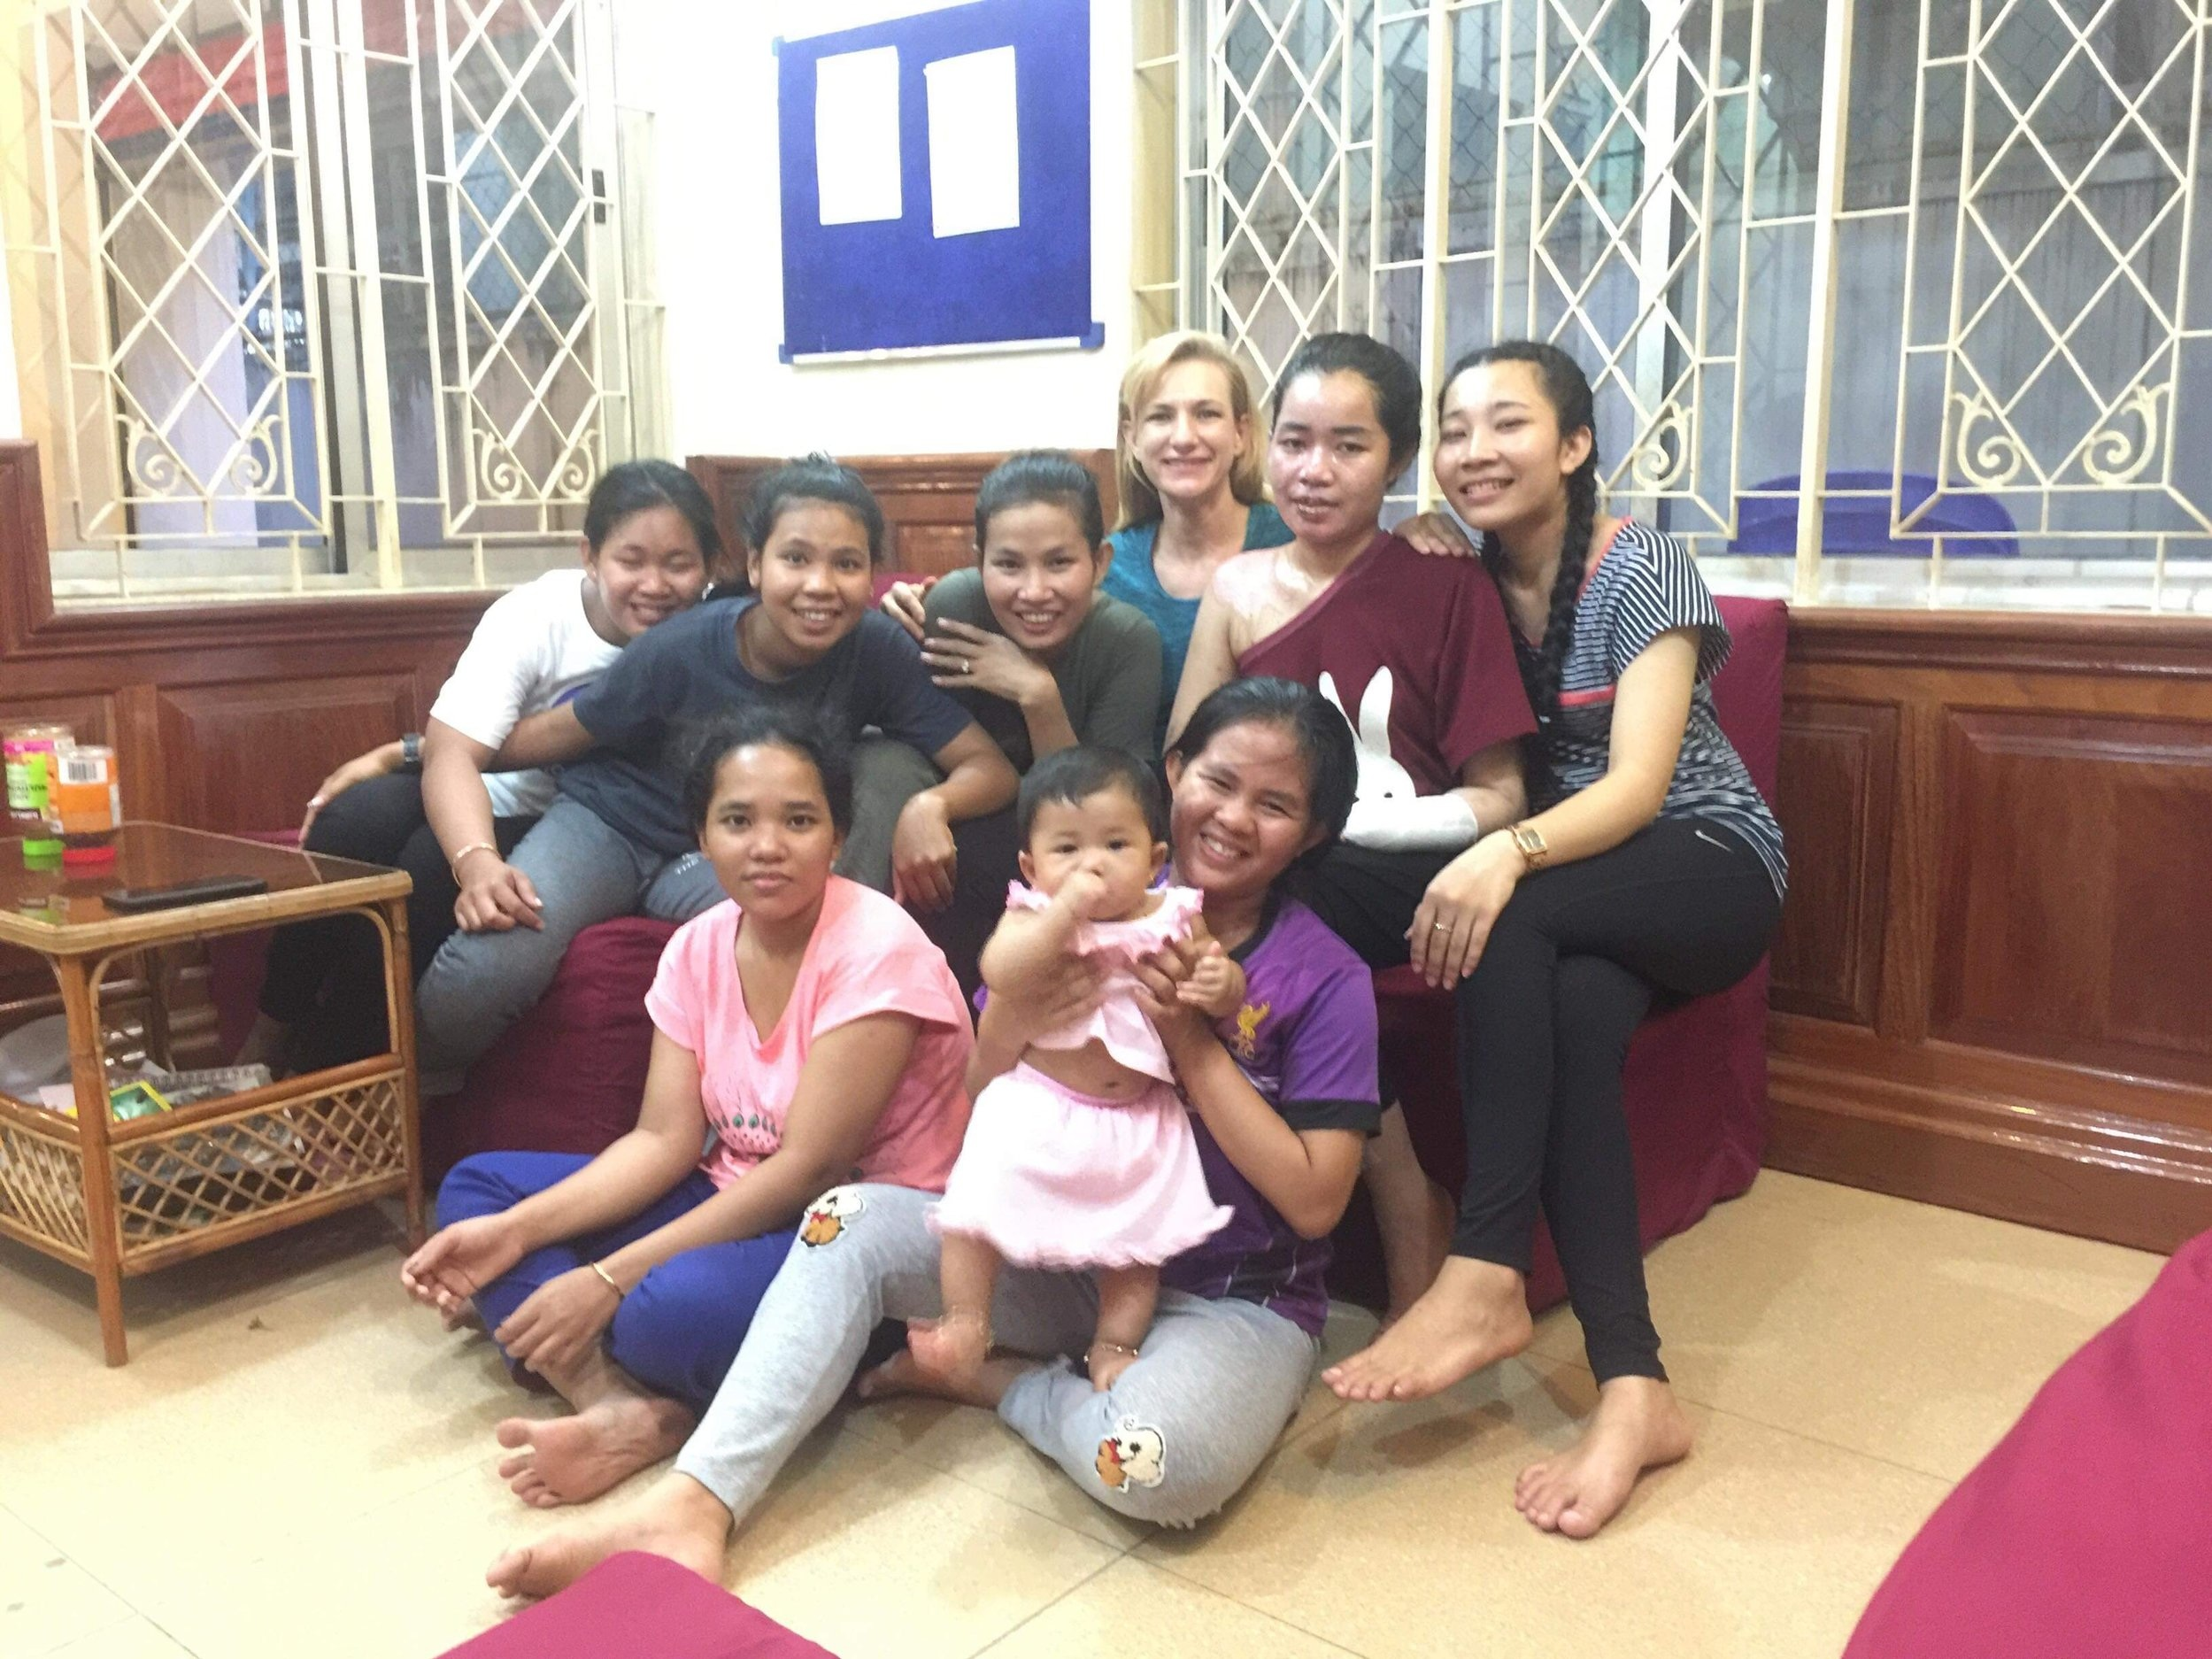 "An update on ""Da"" from our last newsletter: she continues to recover well at the Cambodian Girls House of Refuge and she has become a Christian! She recently demonstrated incredible courage by testifying in court about her gruesome attempted murder. Please pray her assailant will be brought to justice soon."